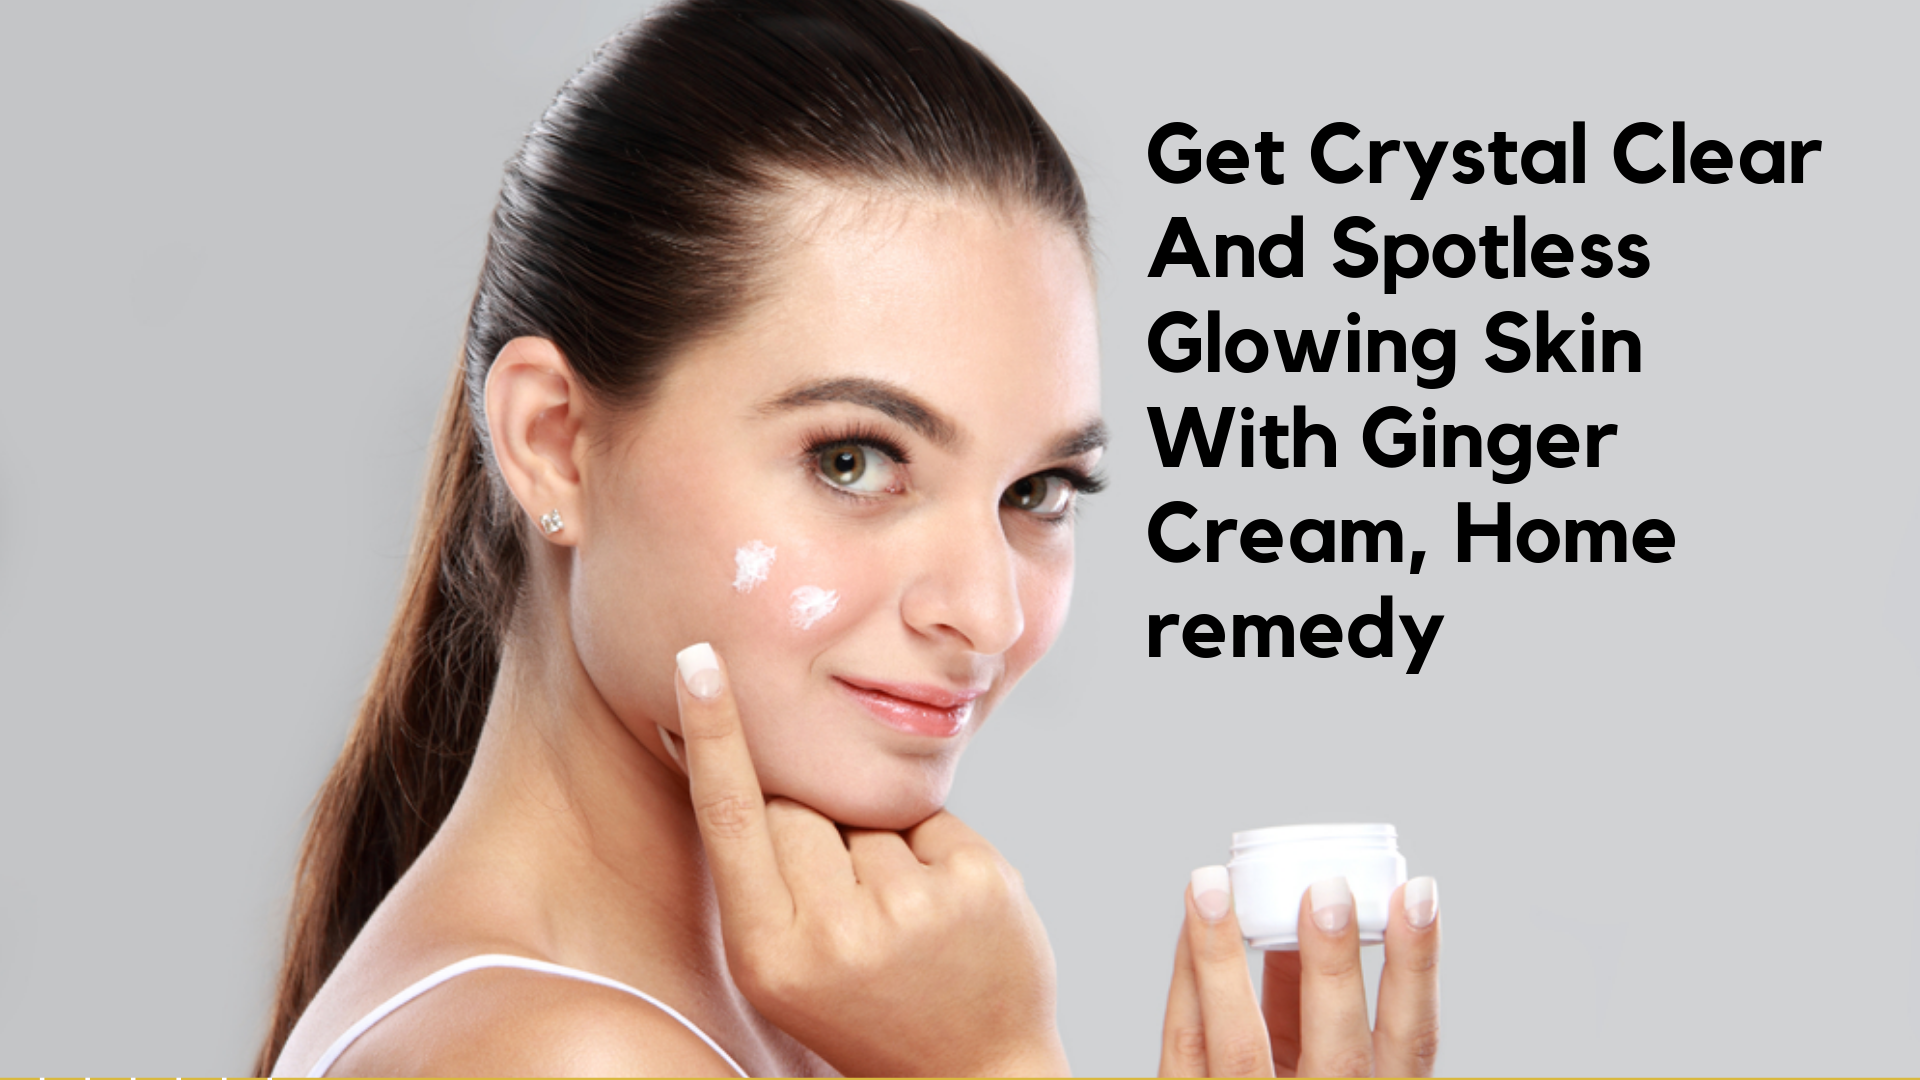 Get Crystal Clear And Spotless Glowing Skin With Ginger Cream